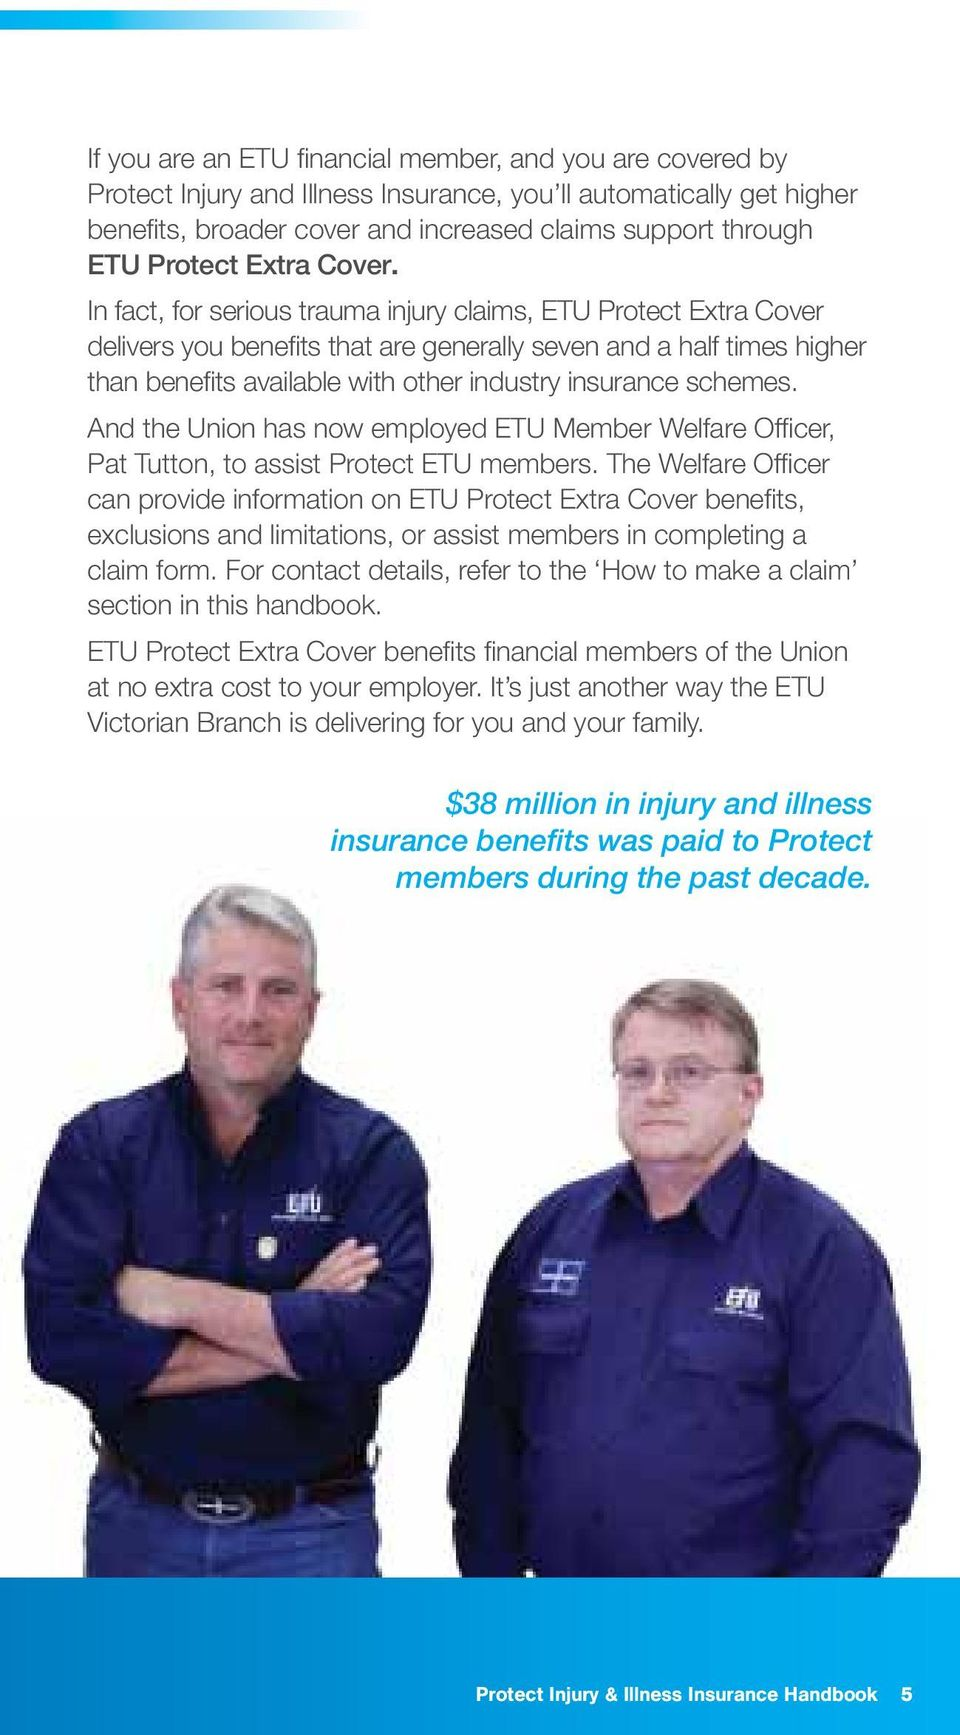 In fact, for serious trauma injury claims, ETU Protect Extra Cover delivers you benefi ts that are generally seven and a half times higher than benefi ts available with other industry insurance